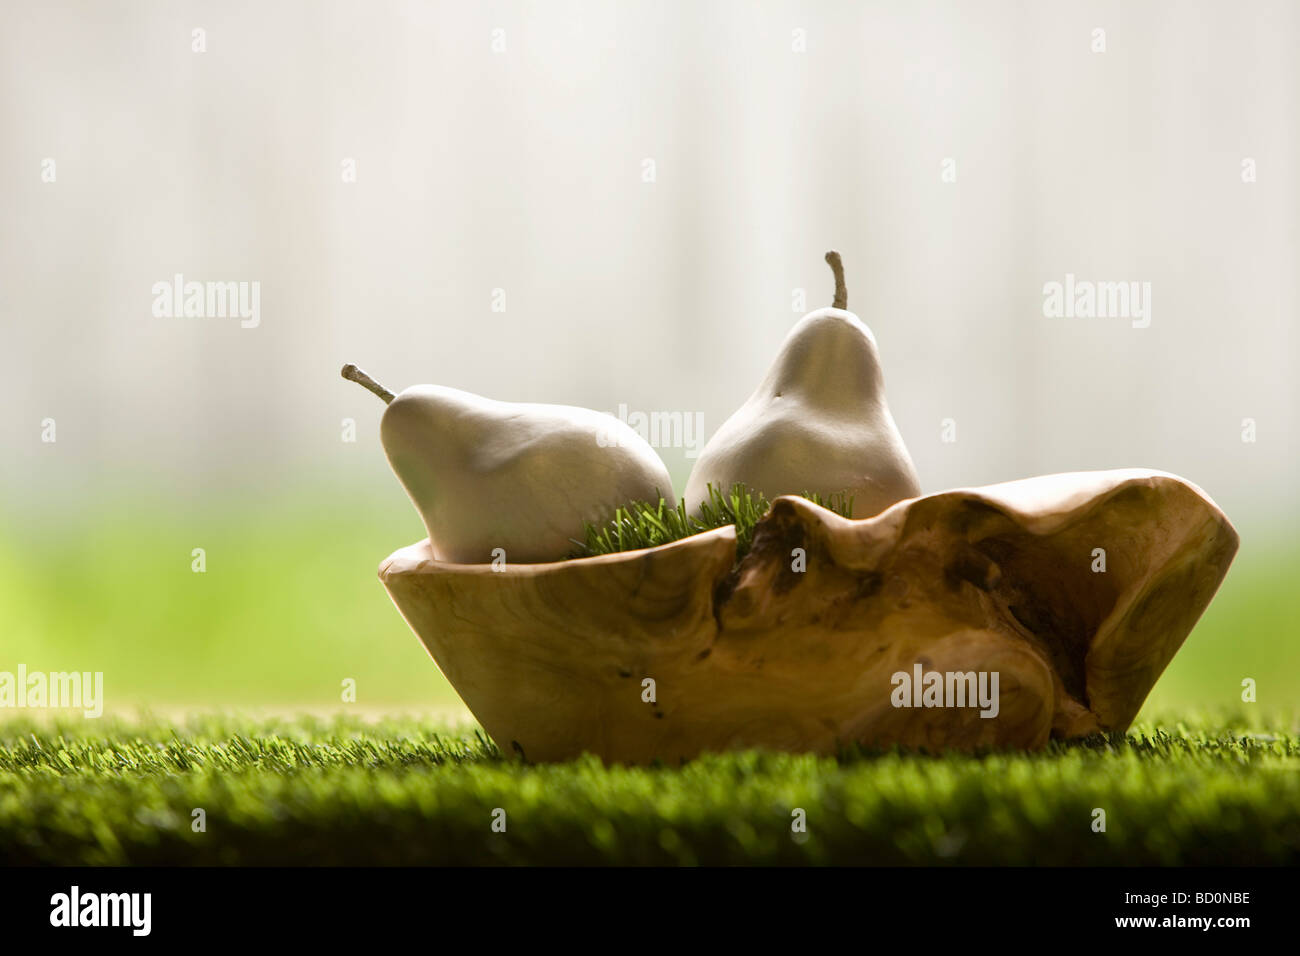 Silver pears in wooden bowl. Stock Photo